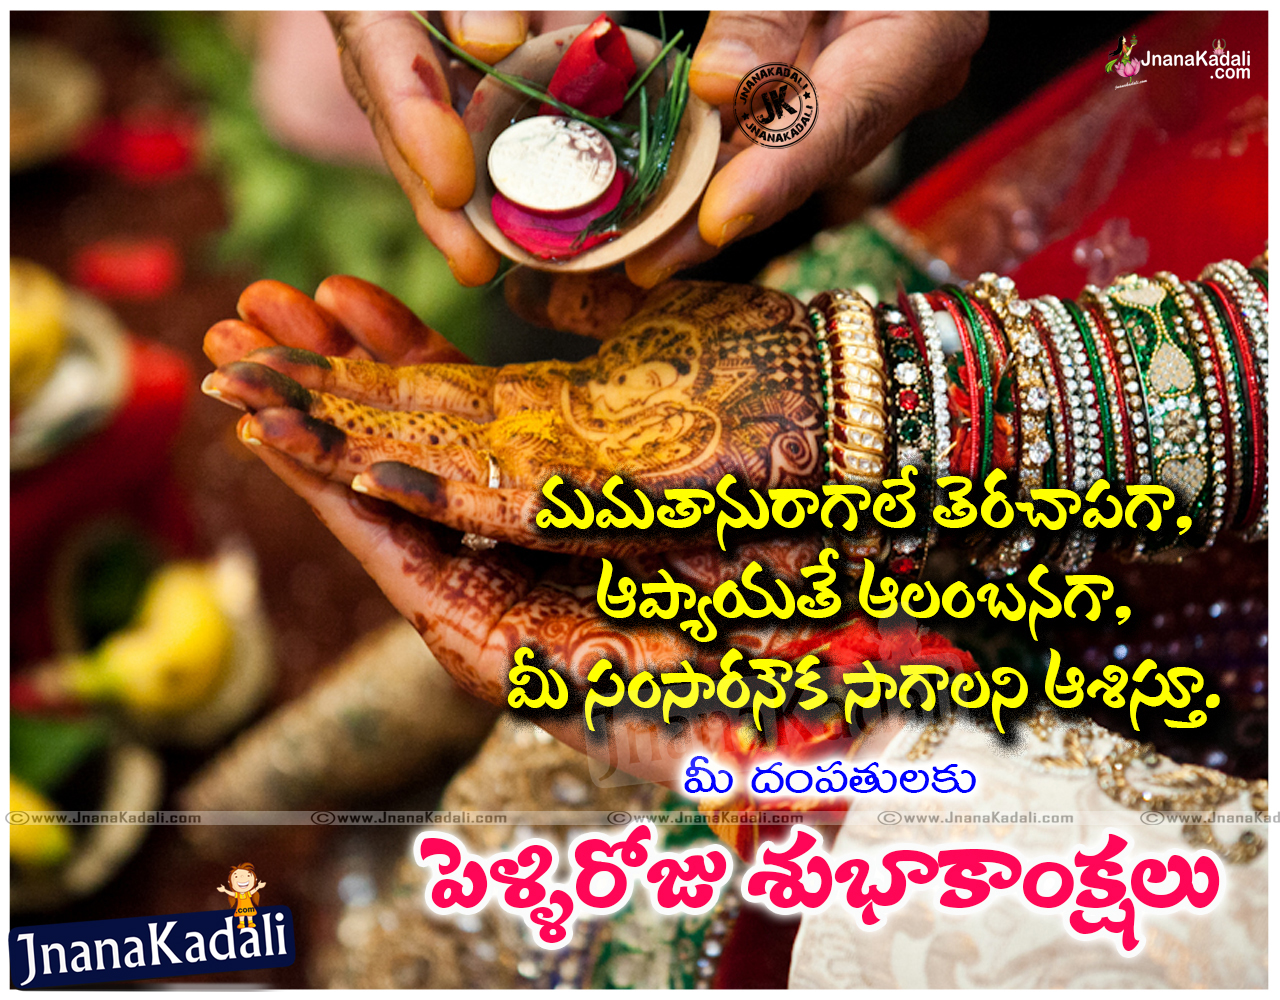 Marriageday greetings in telugu free subhakankshalu with images awesome telugu marriage quotations and greetings onlinenice telugu beautiful marriage images for friends kristyandbryce Gallery